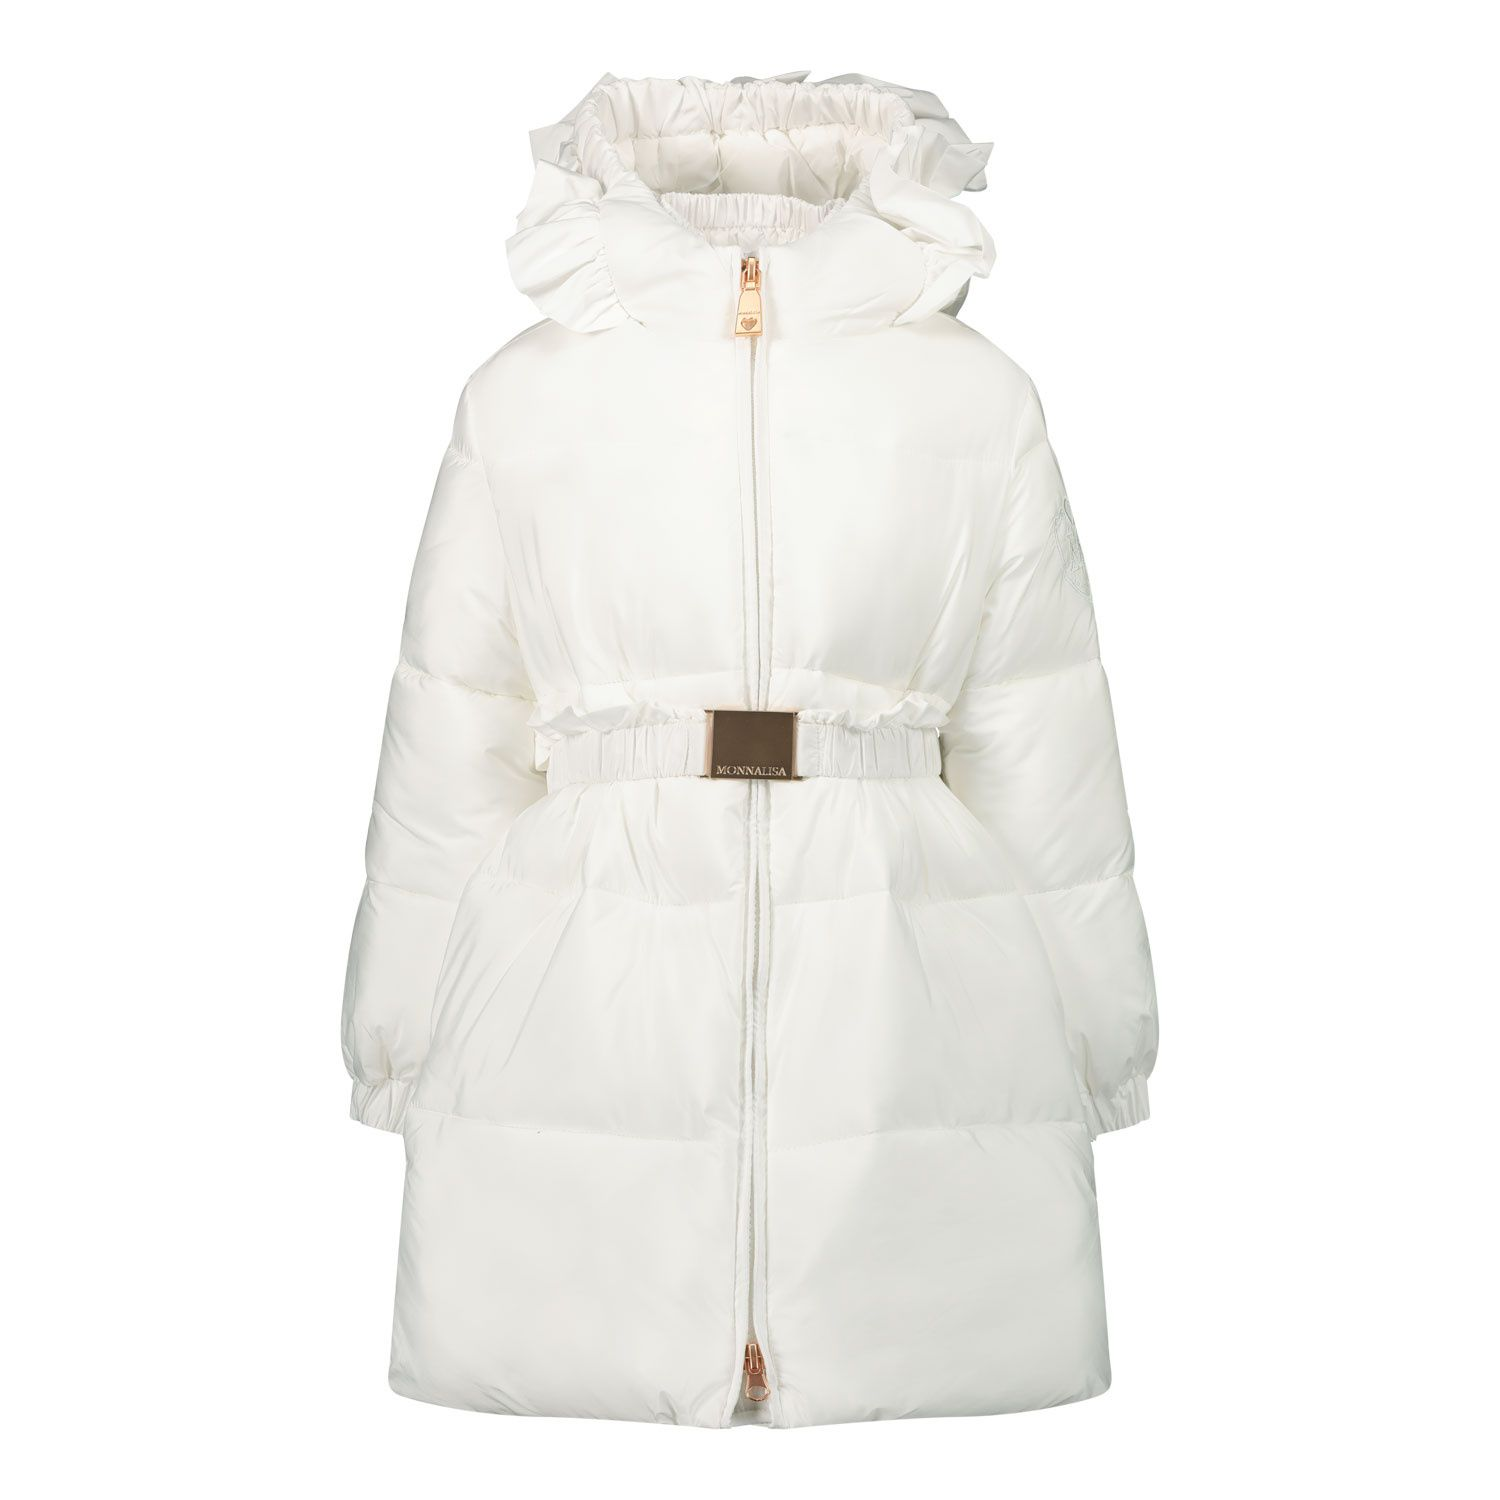 Picture of MonnaLisa 396100 baby coat off white